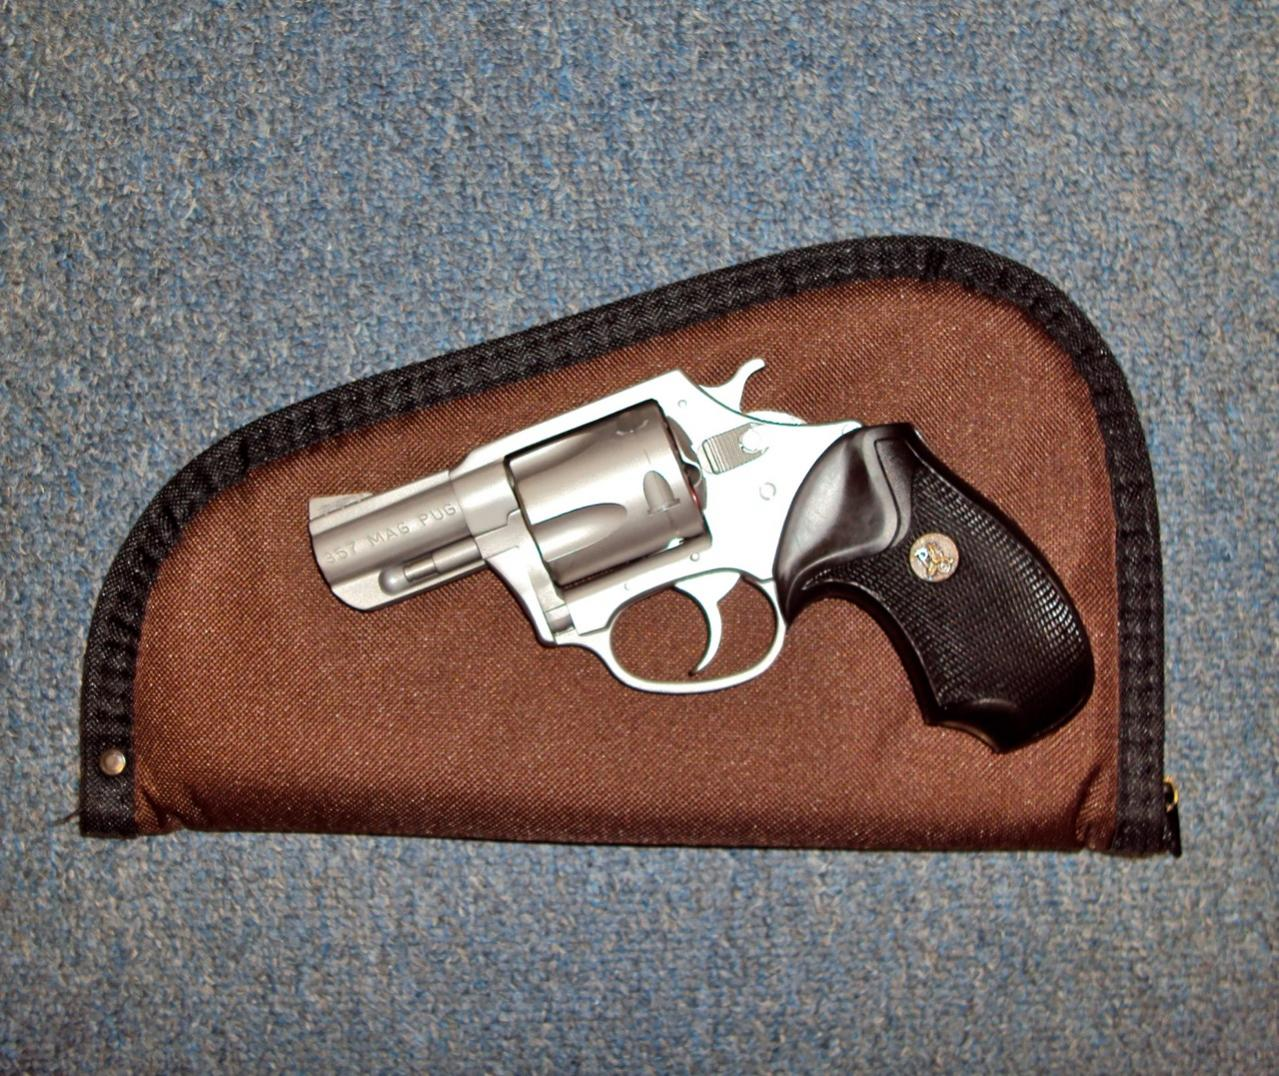 Charter Arms Mag Pug .357 review-charter_pachmayr.jpg